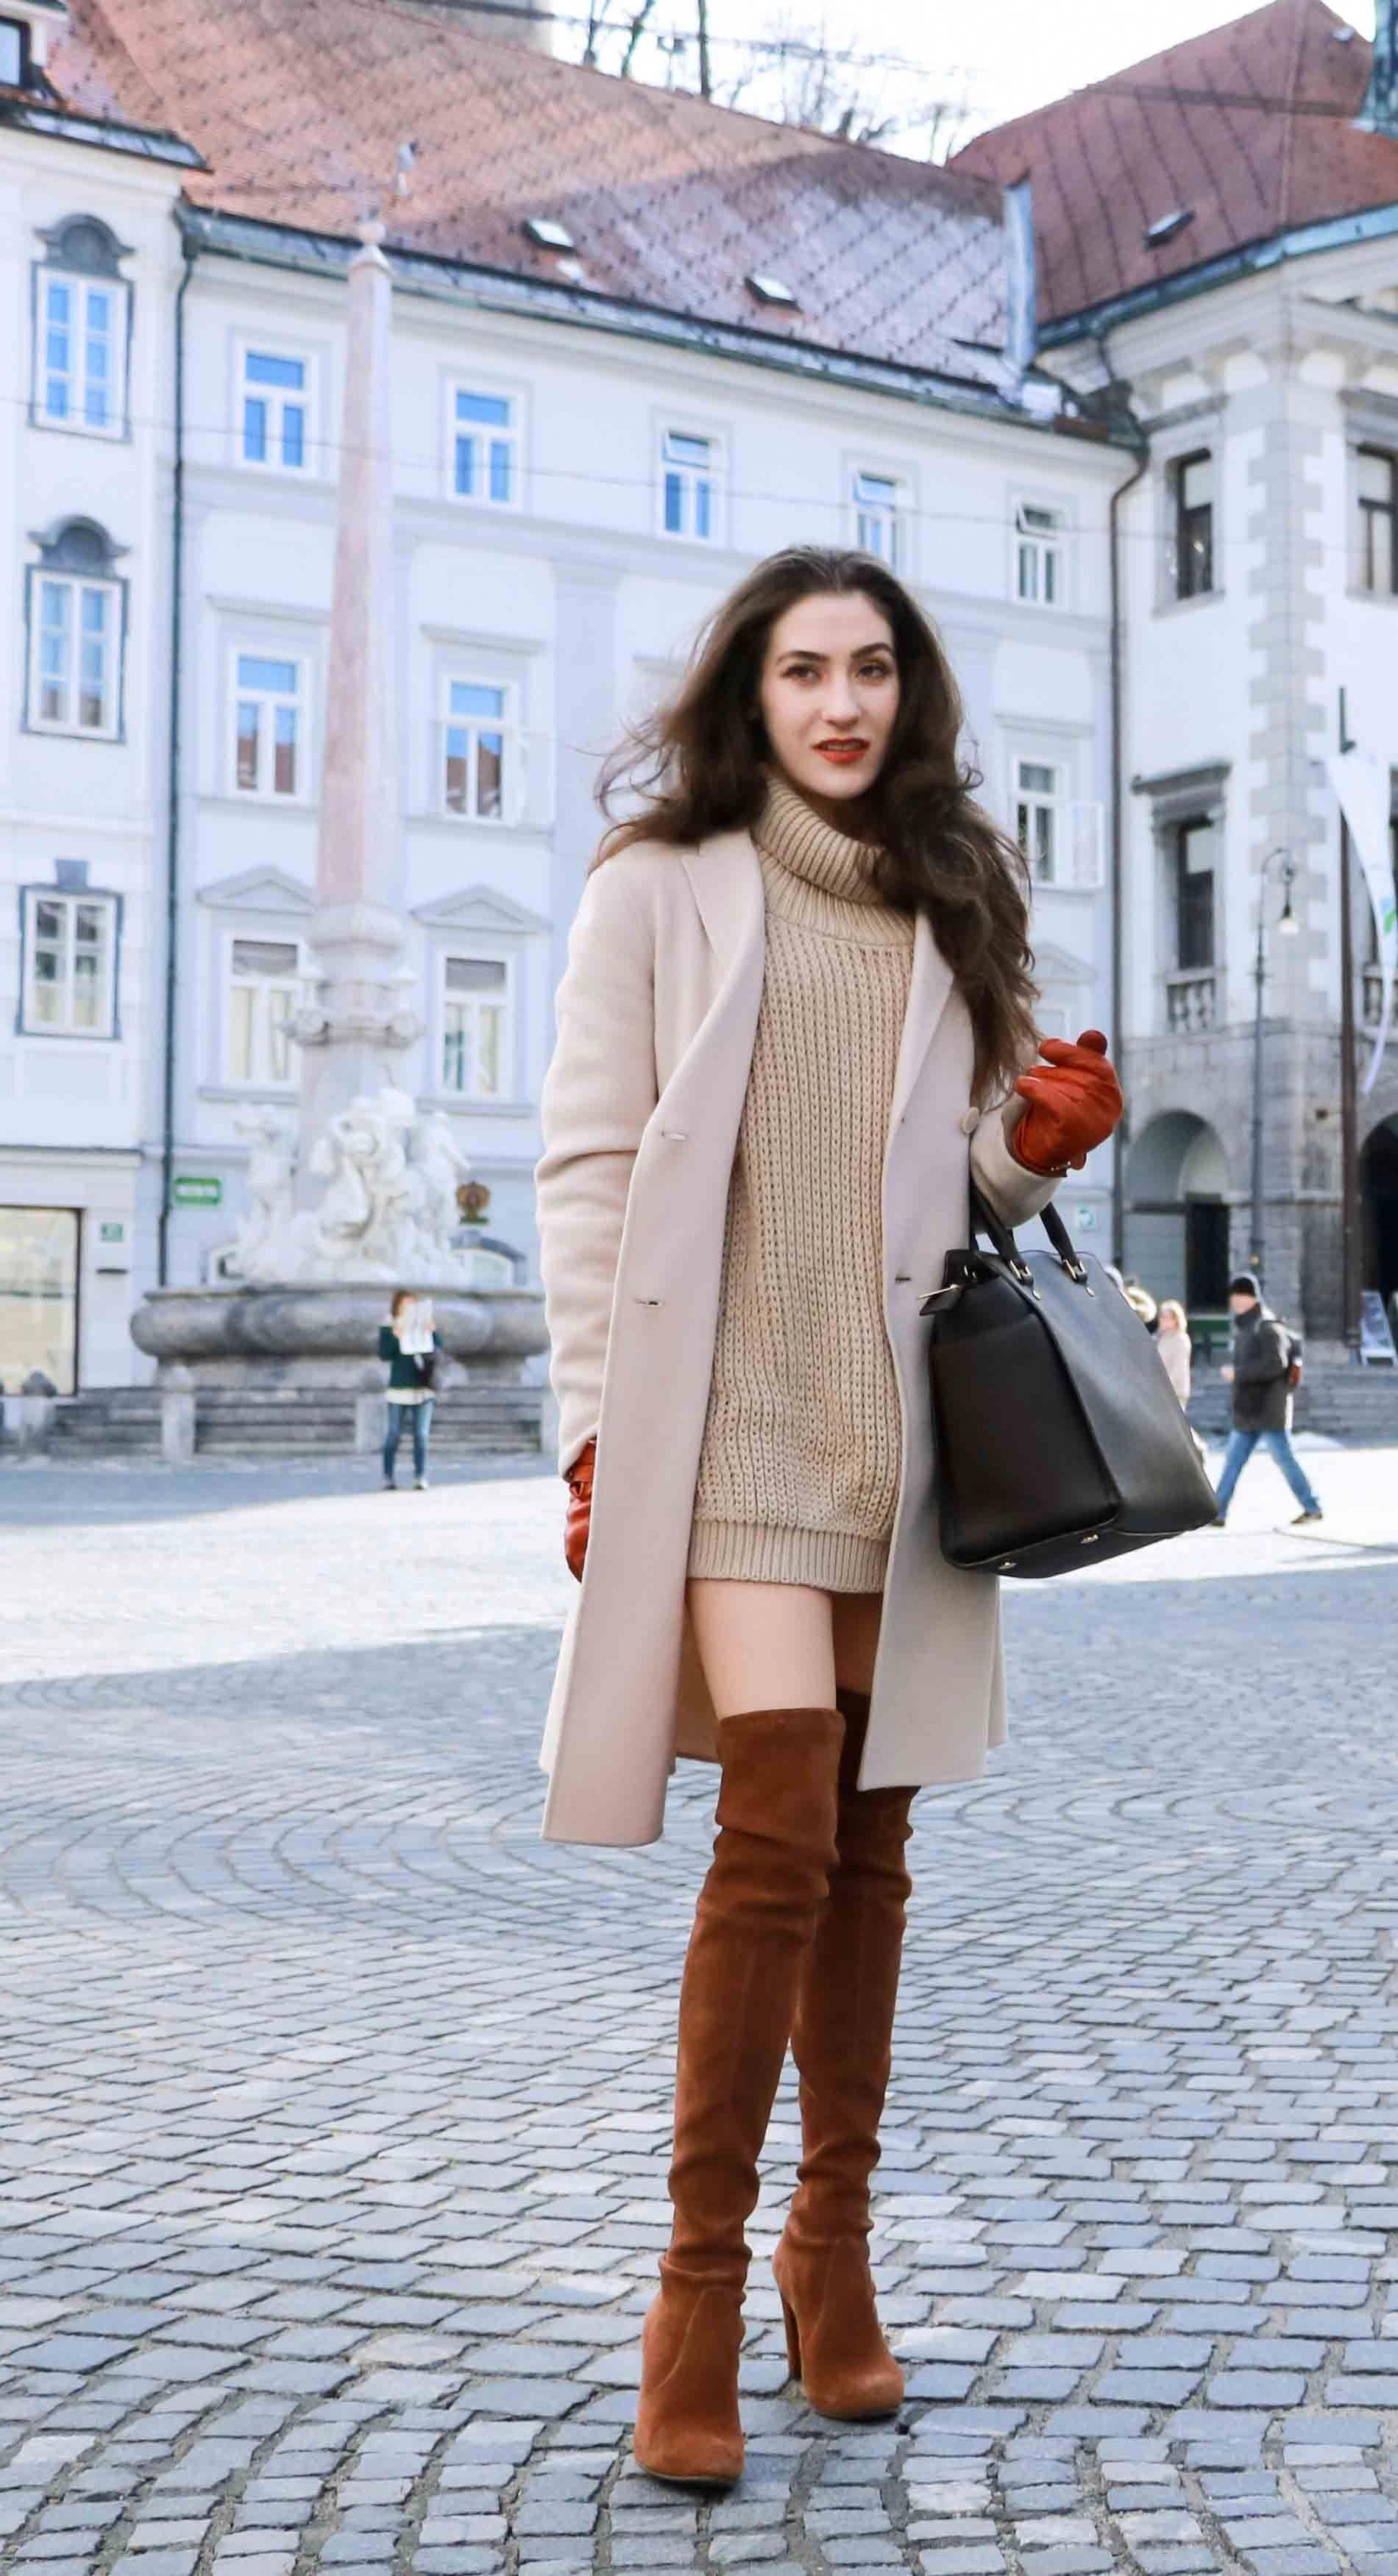 4021a1f1b3d Fashion Blogger Veronika Lipar of Brunette from Wall wearing double  breasted coat